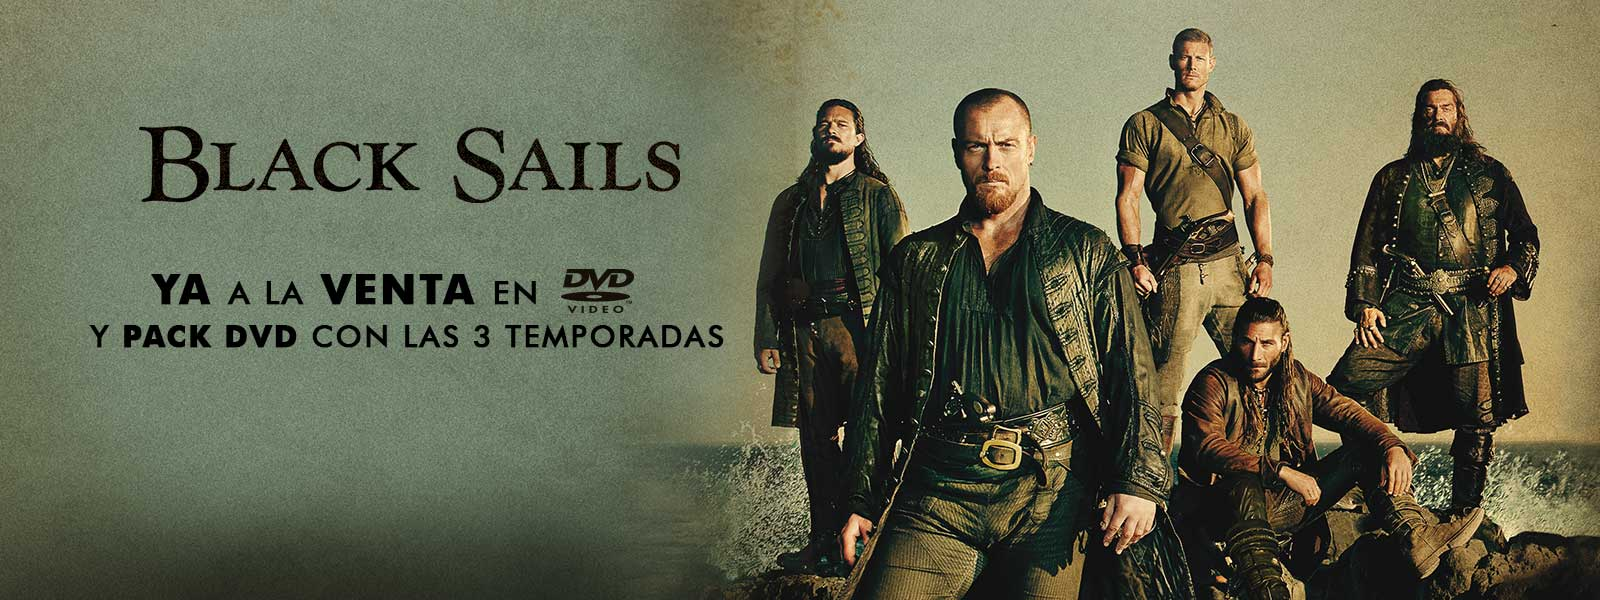 Black Sails - Temporada 3 y Pack Temporada 1-3 en DVD